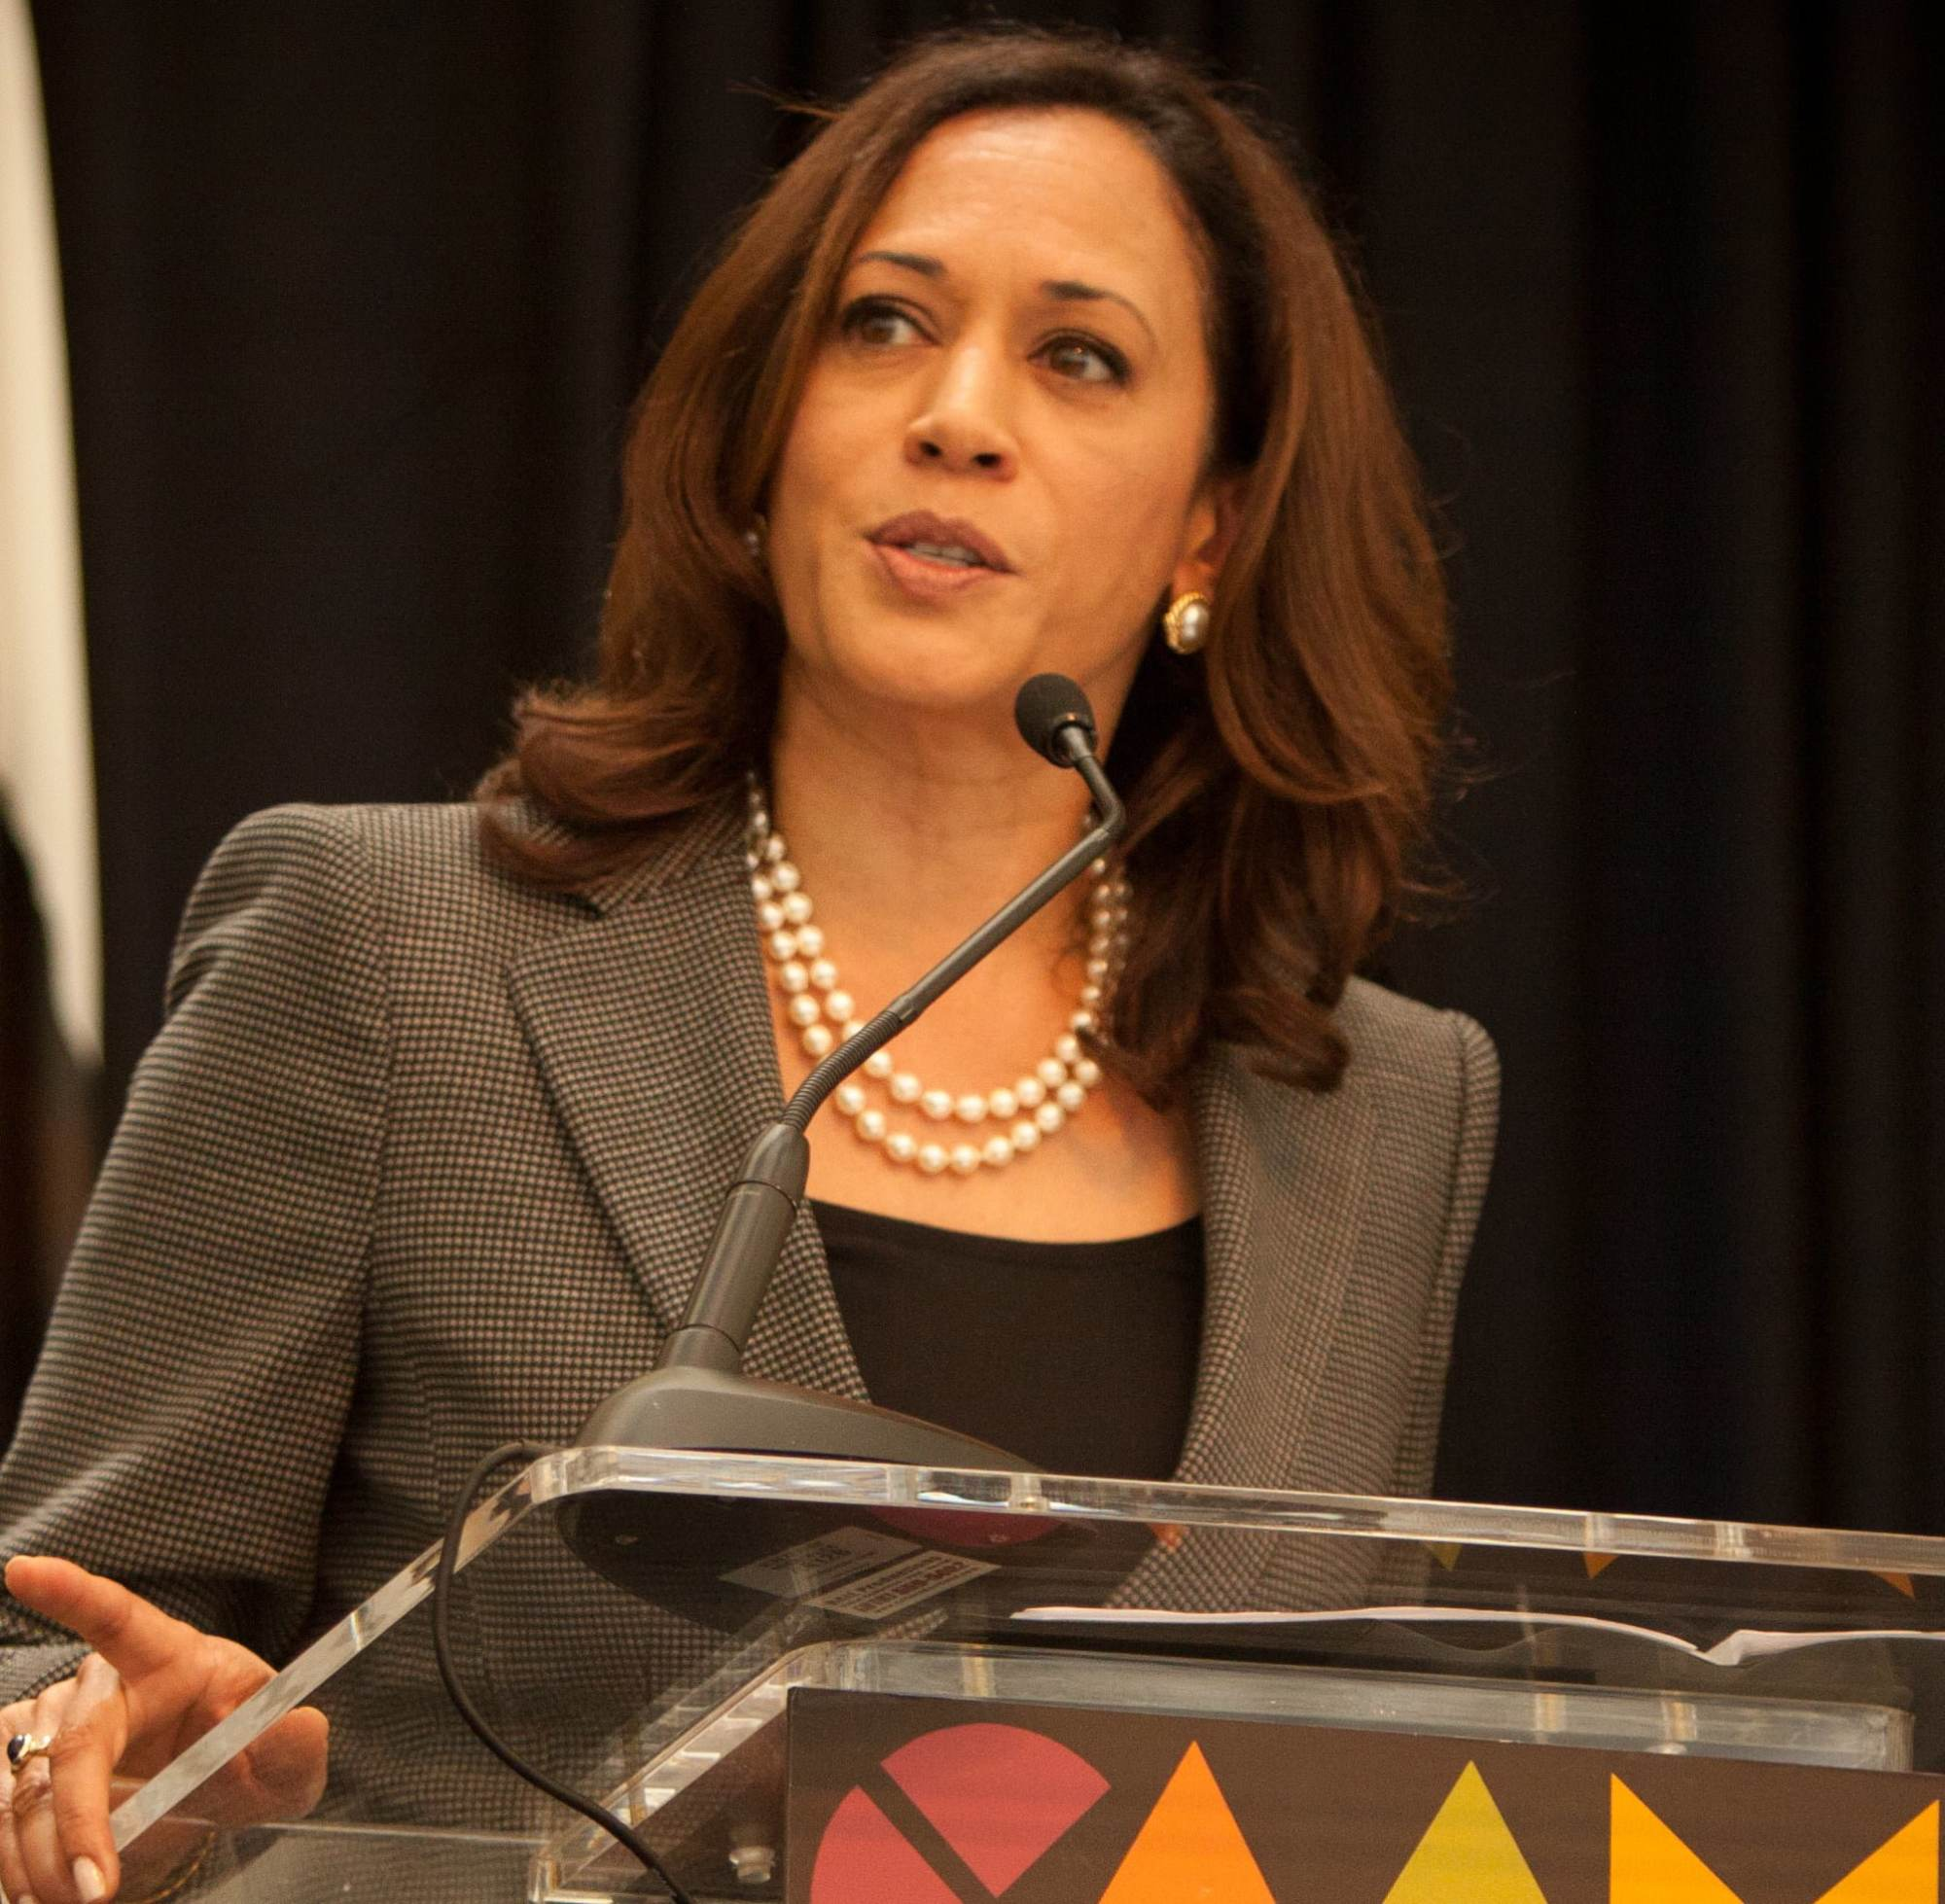 Harris: Young Black Men Jailed for Selling Pot Should Be 'First in Line For Legal Weed Jobs'